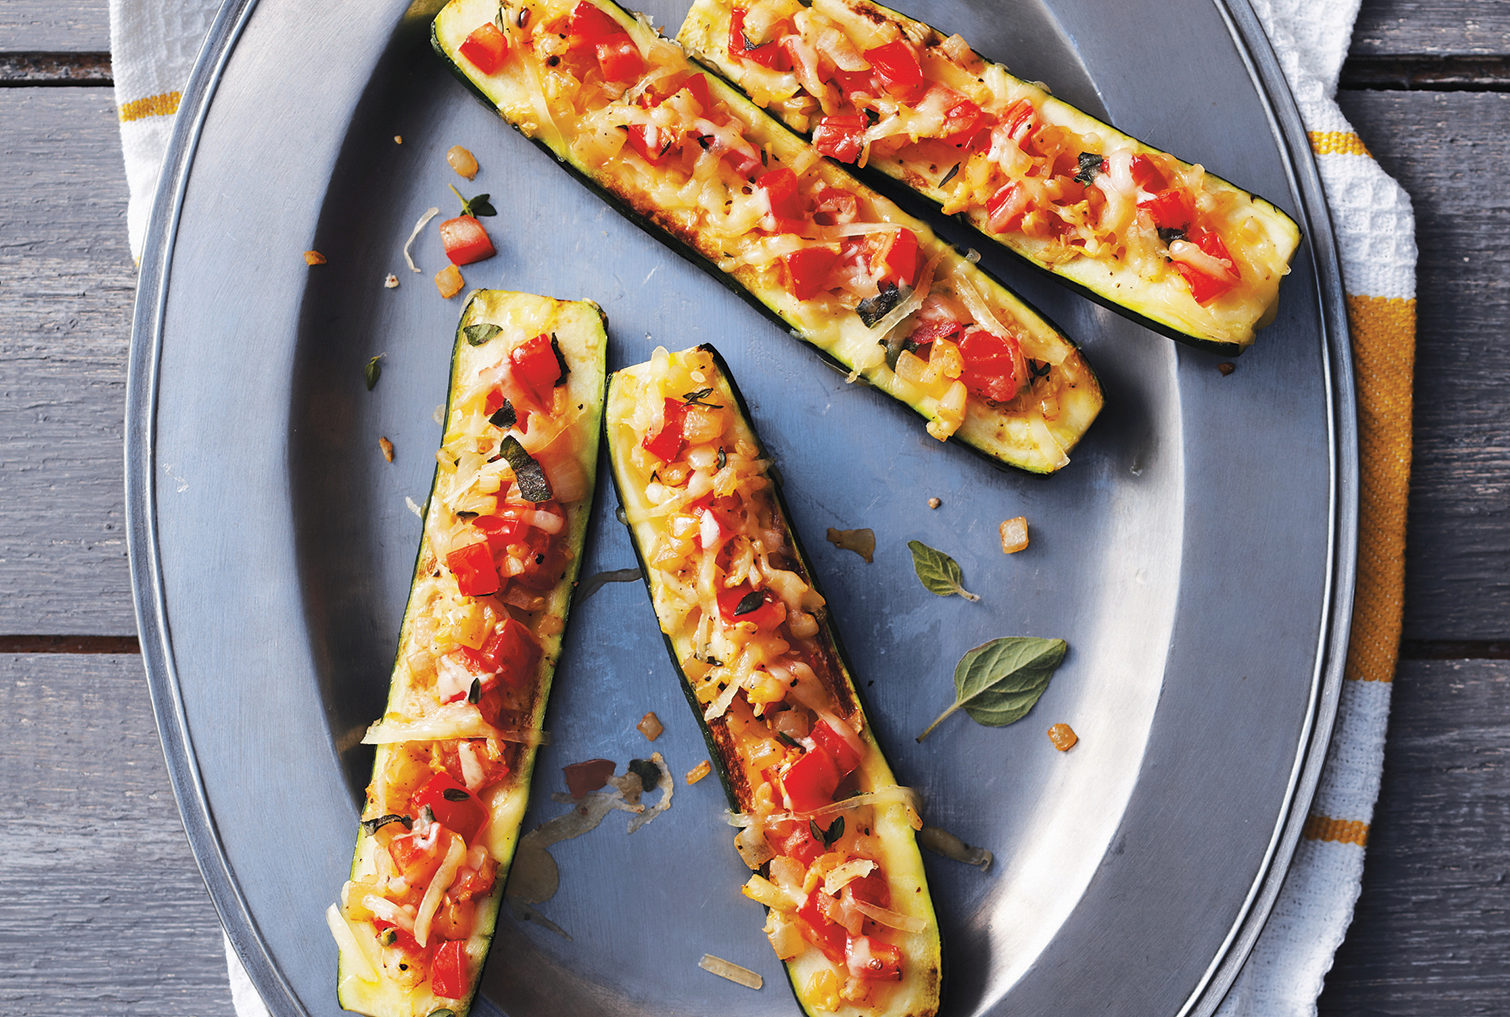 tomato cheese stuffed zucchini